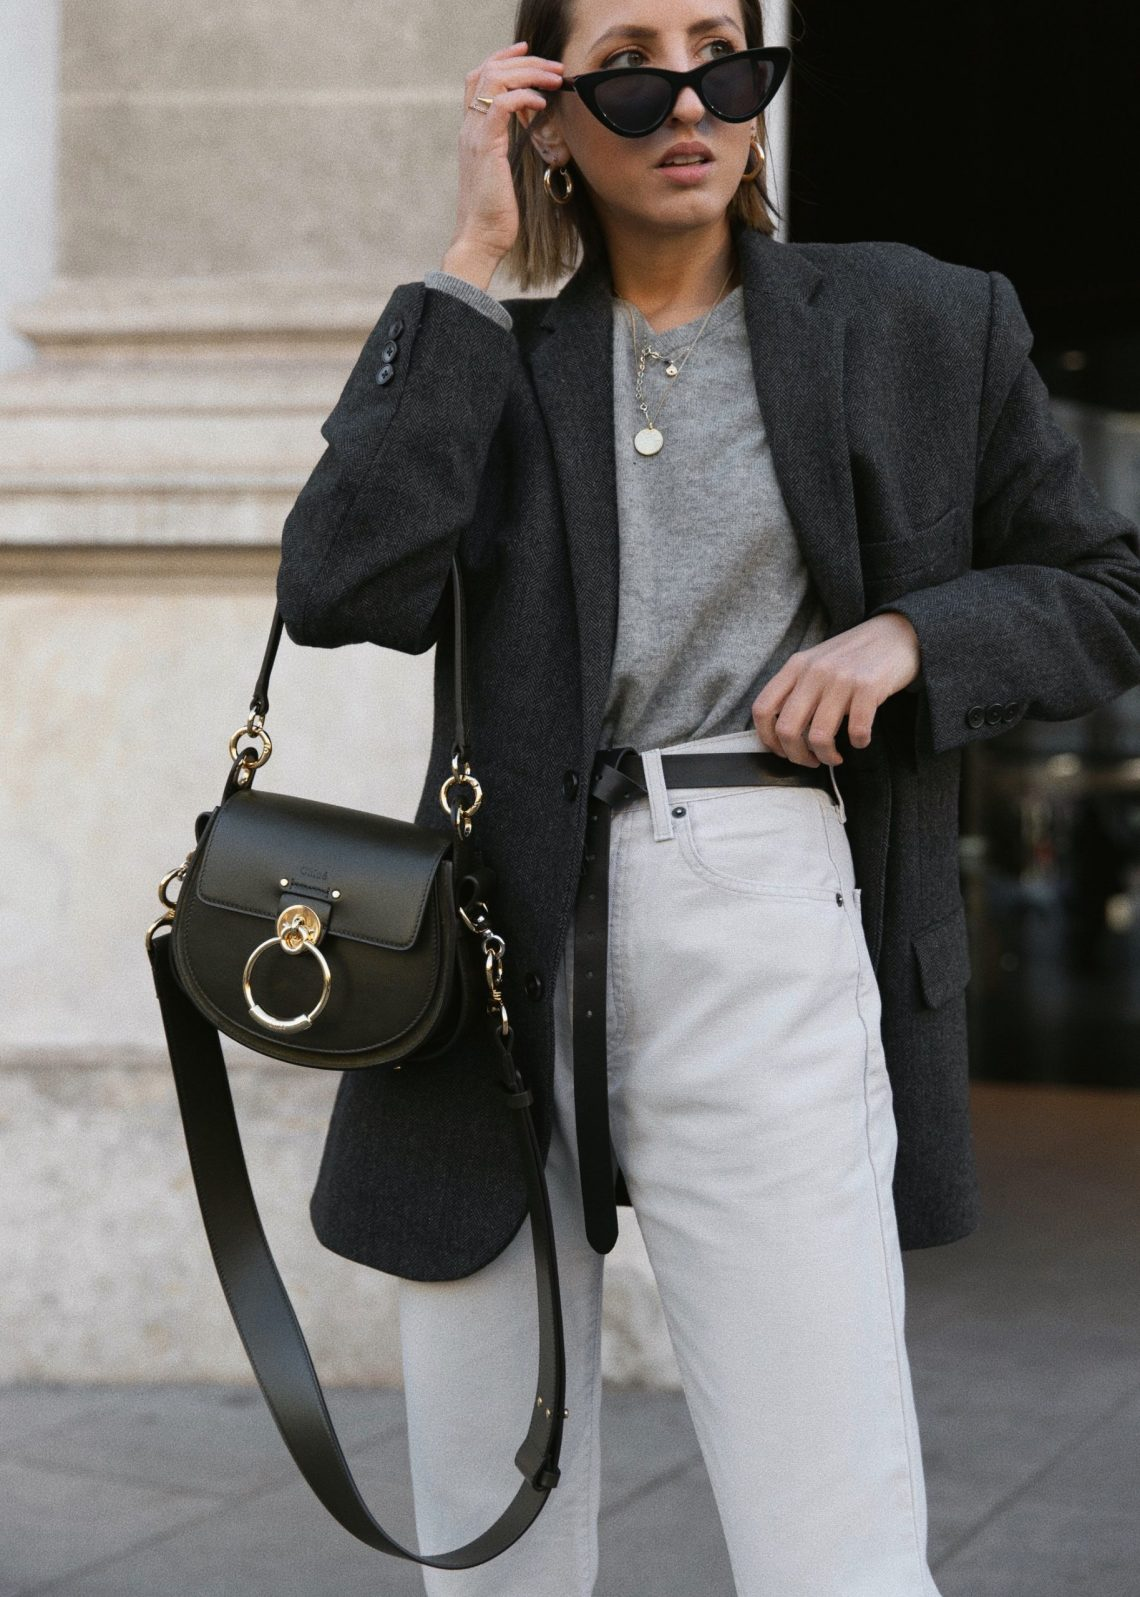 Steal Her Style: Hues Of Grey